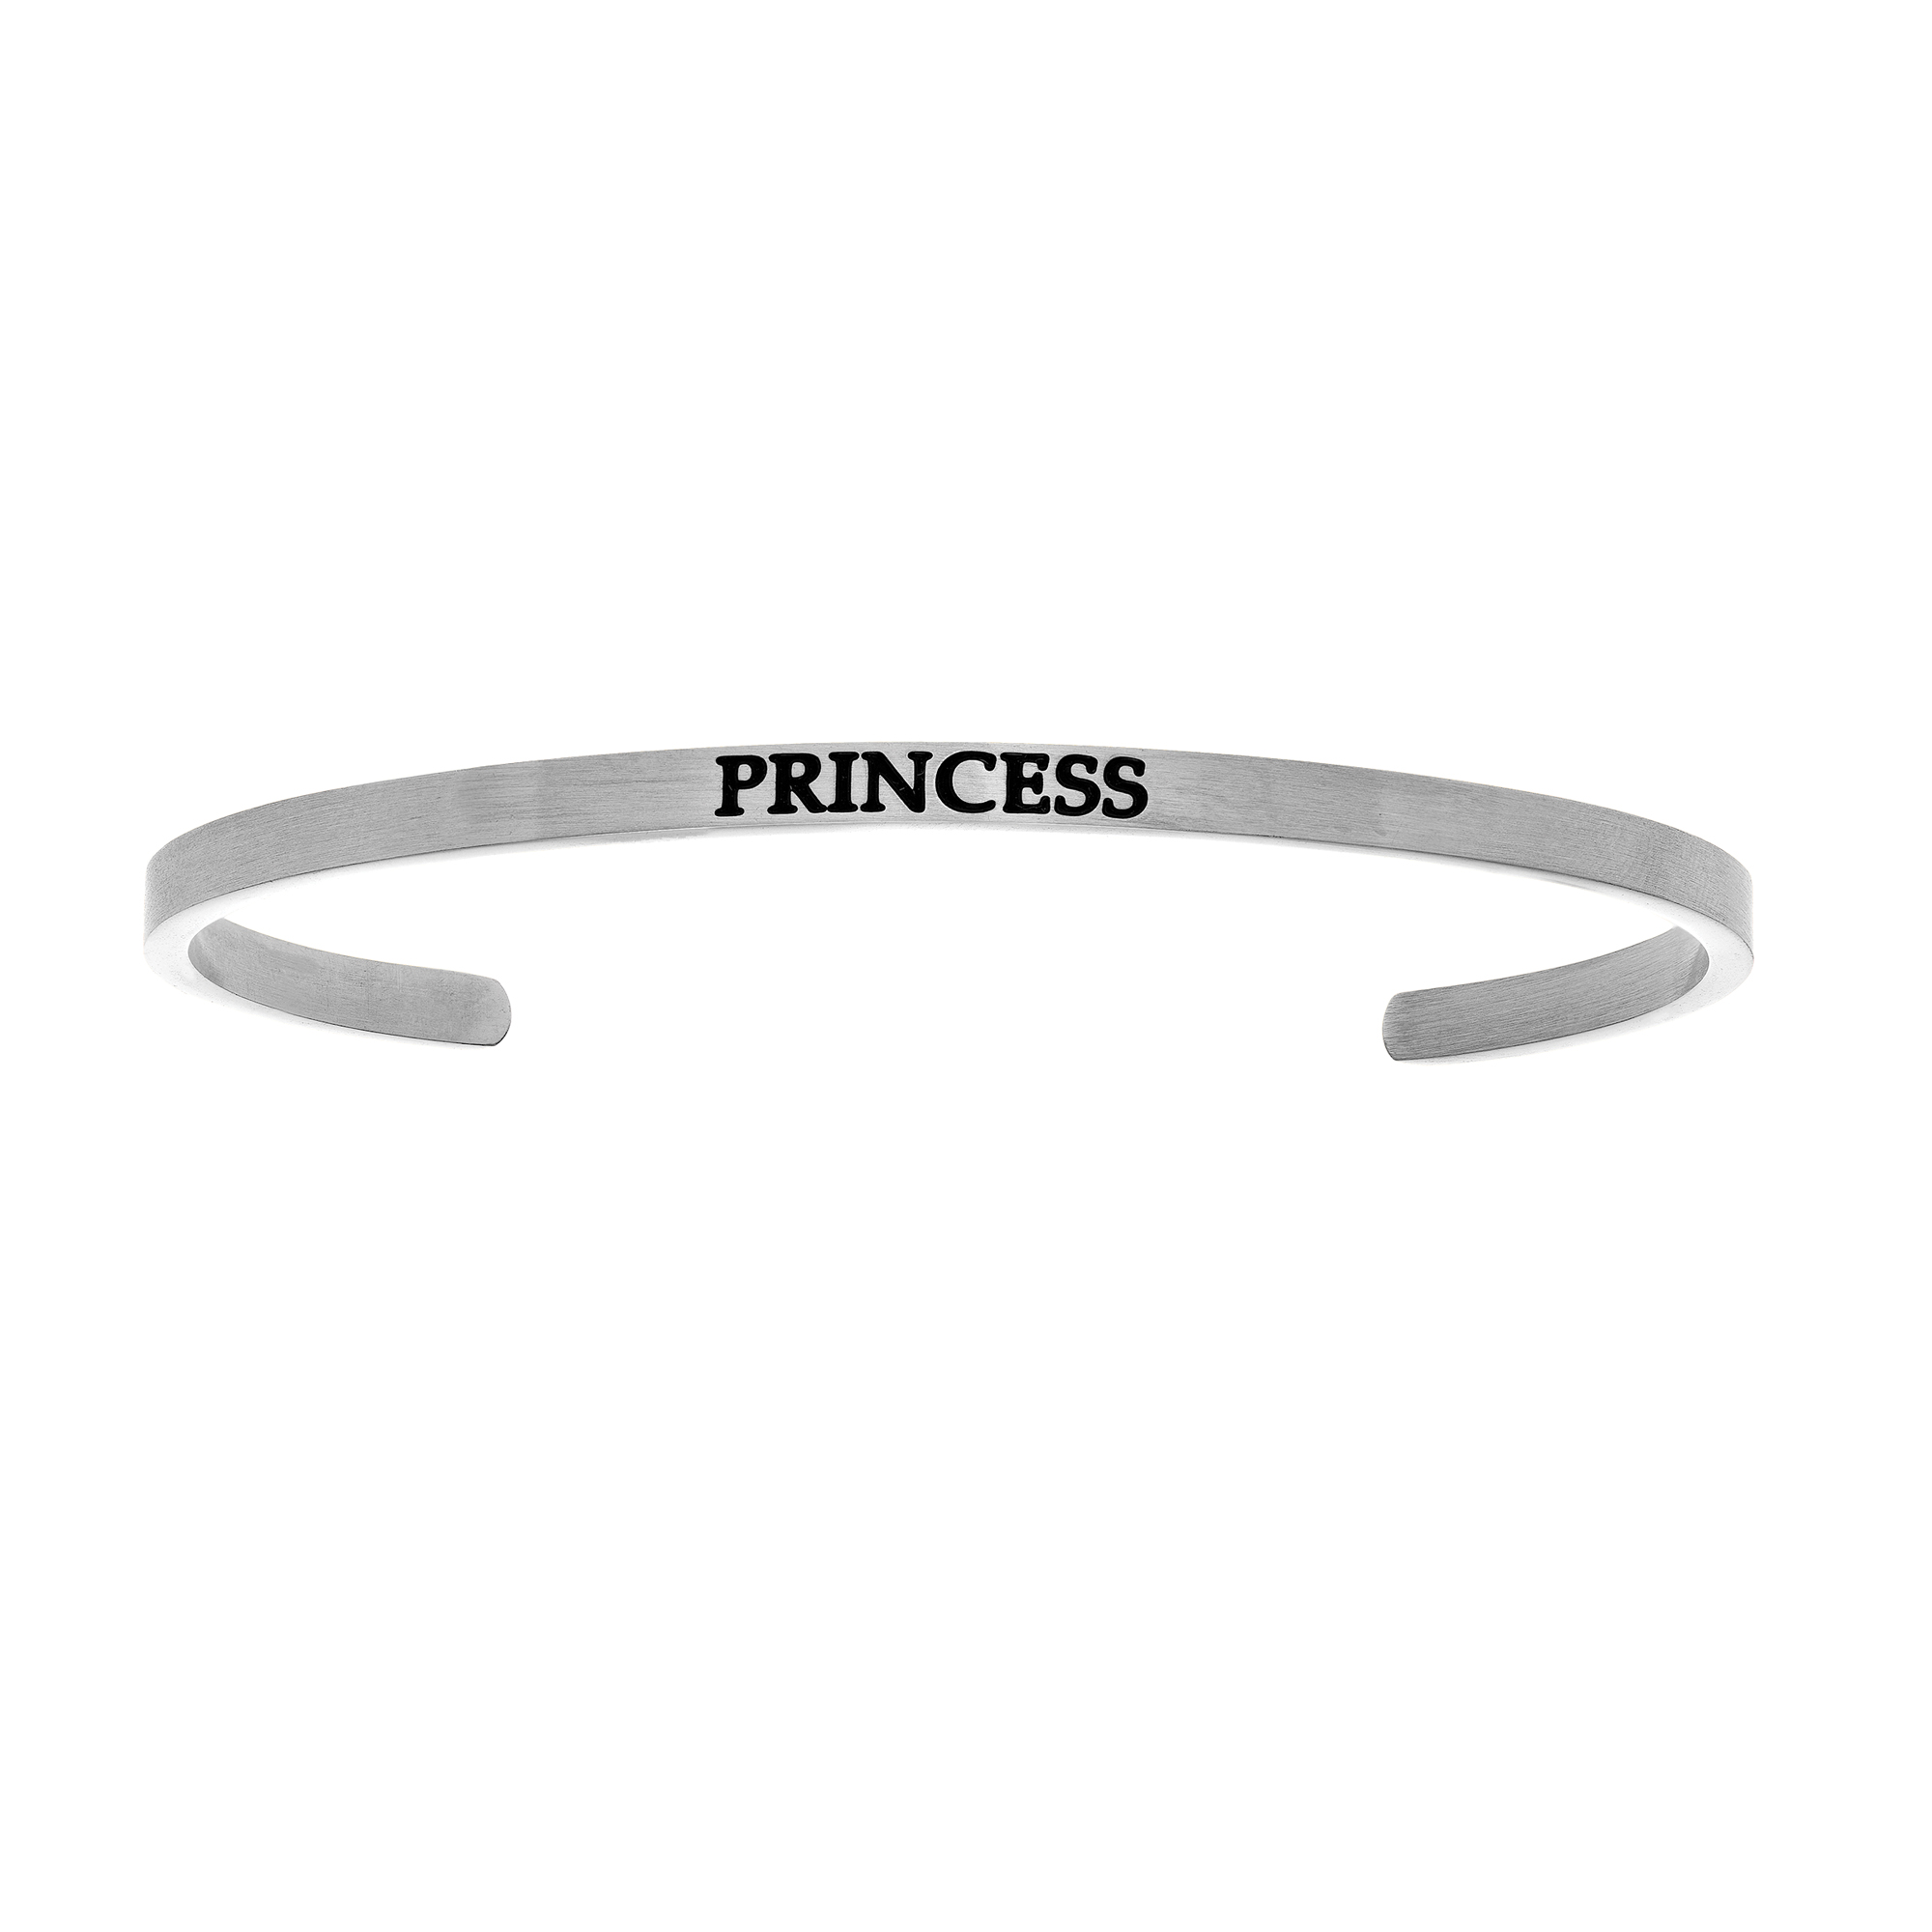 Intuitions Stainless Steel PRINCESS Diamond Accent Cuff Bangle Bracelet, 7″